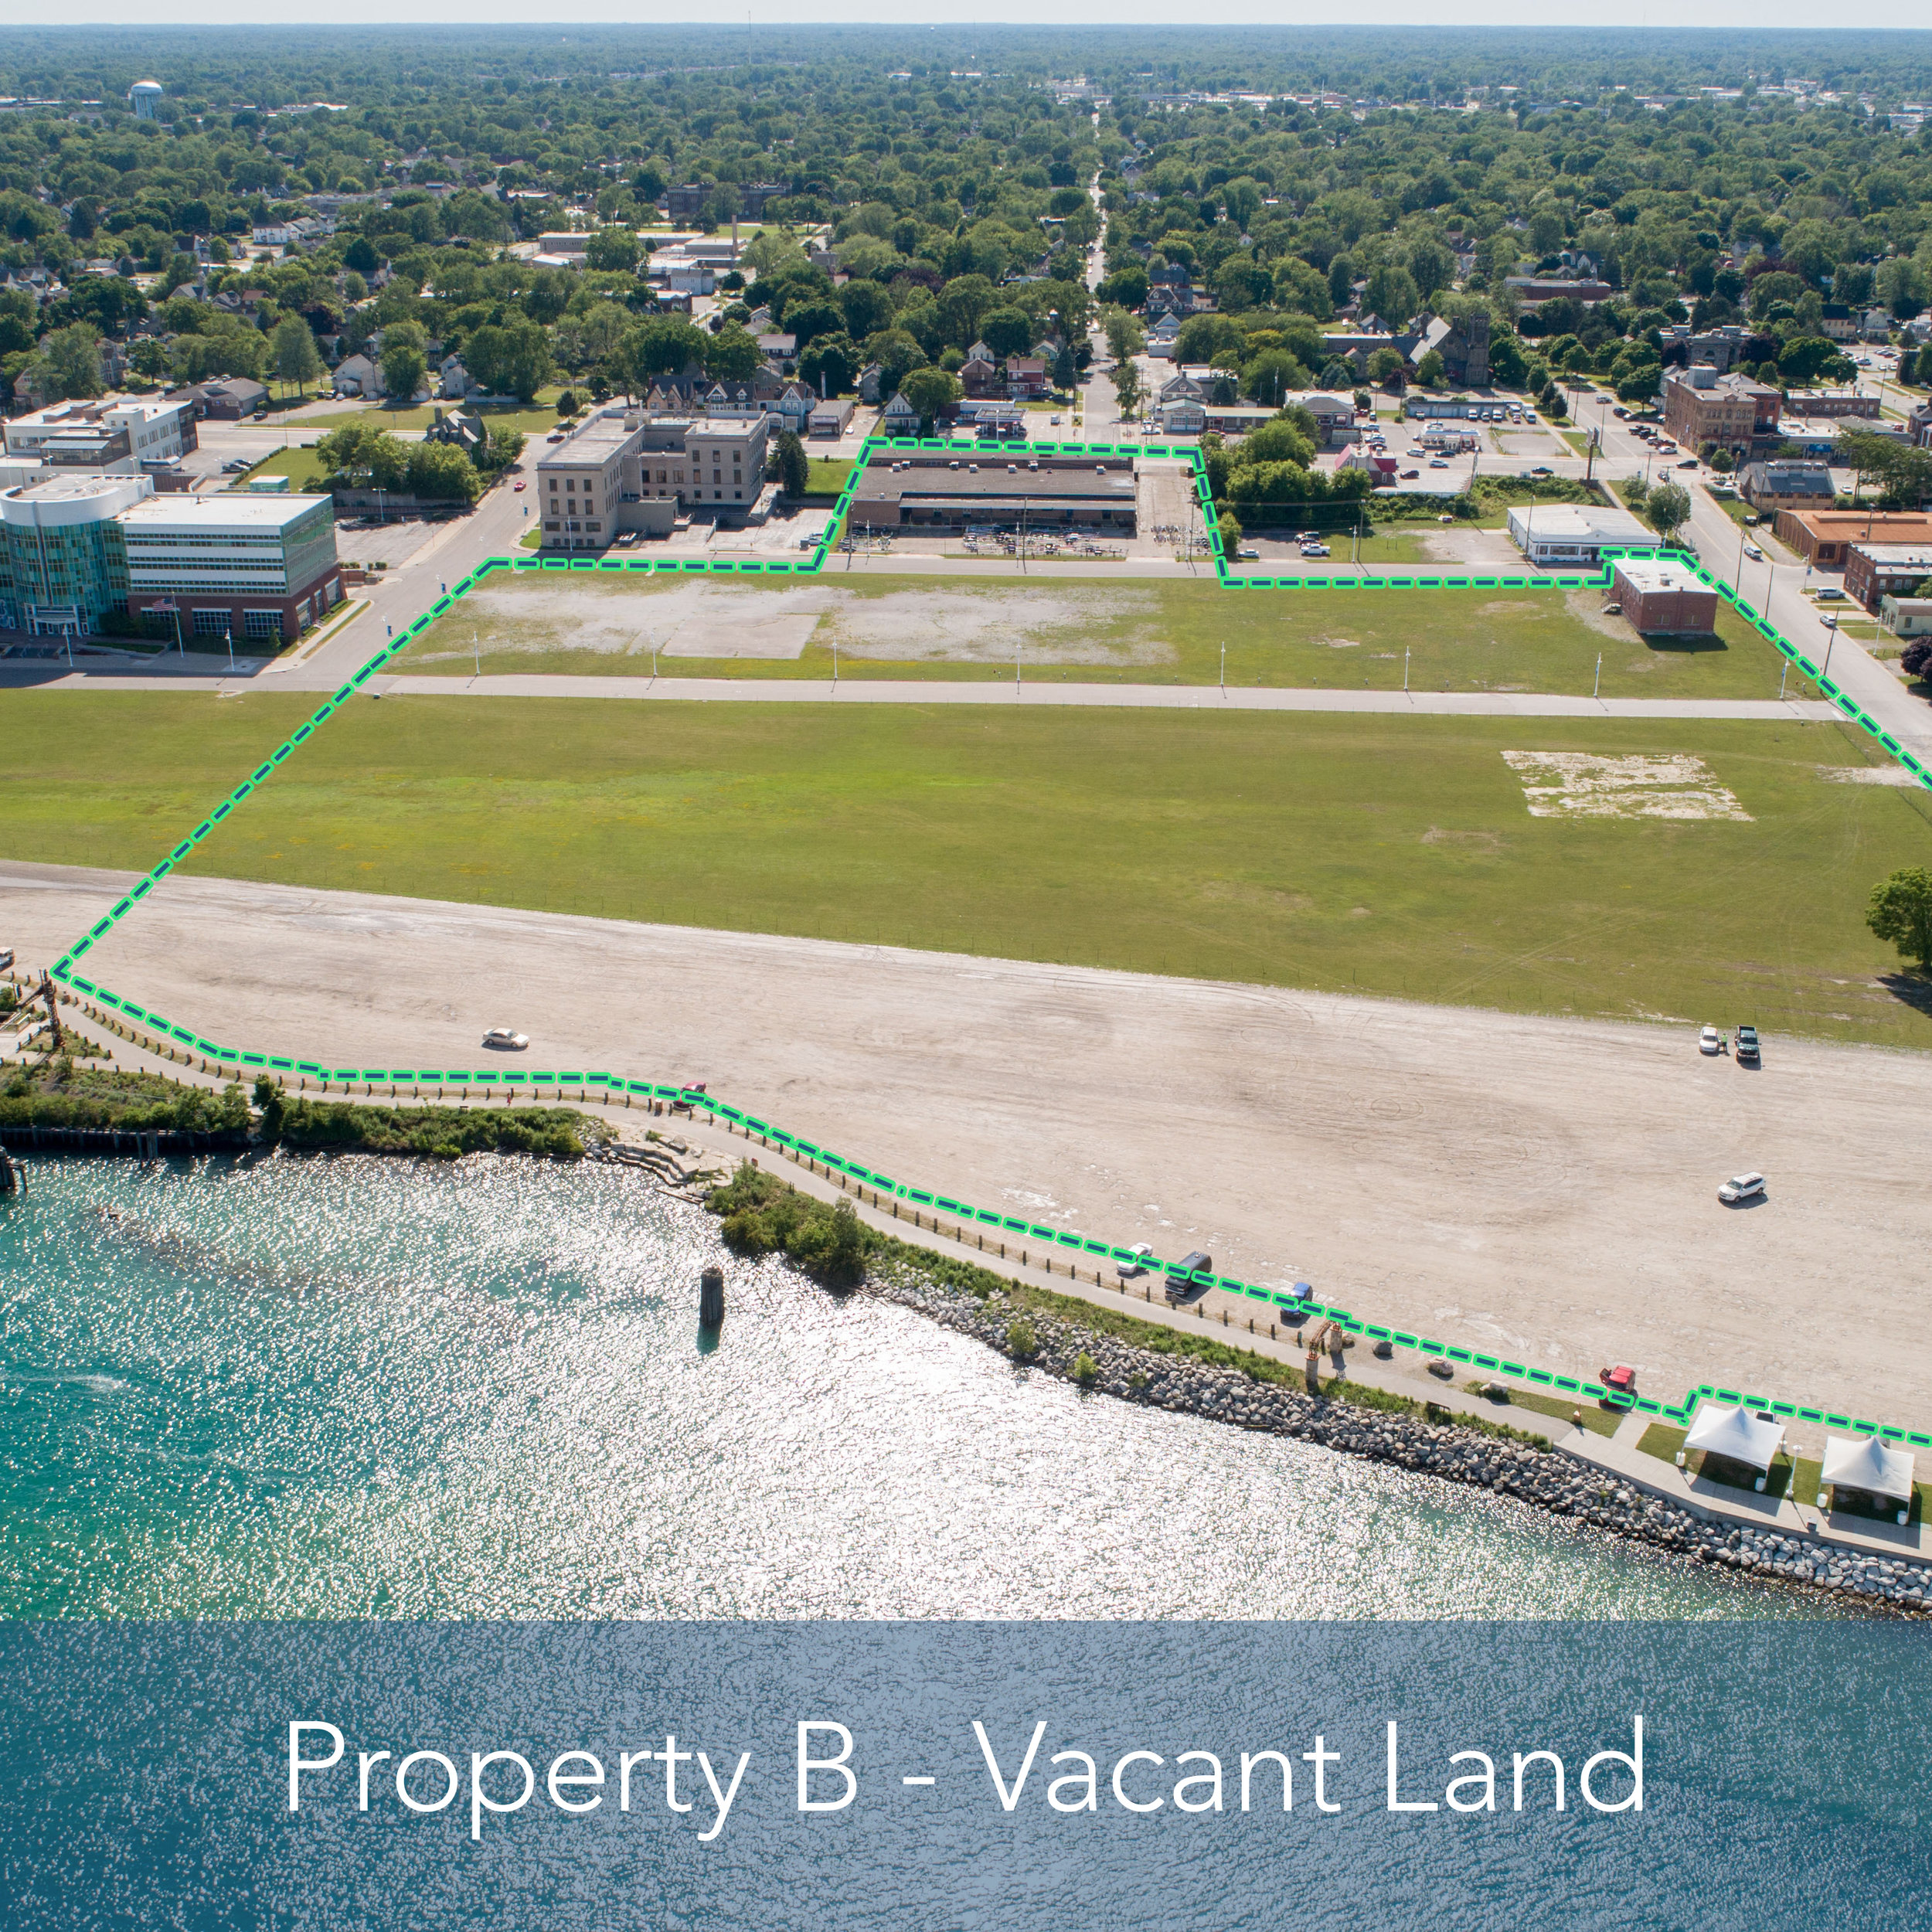 Property B - 16 Acre Vacant Lot   Potential for a partnership property with St. Clair River frontage.